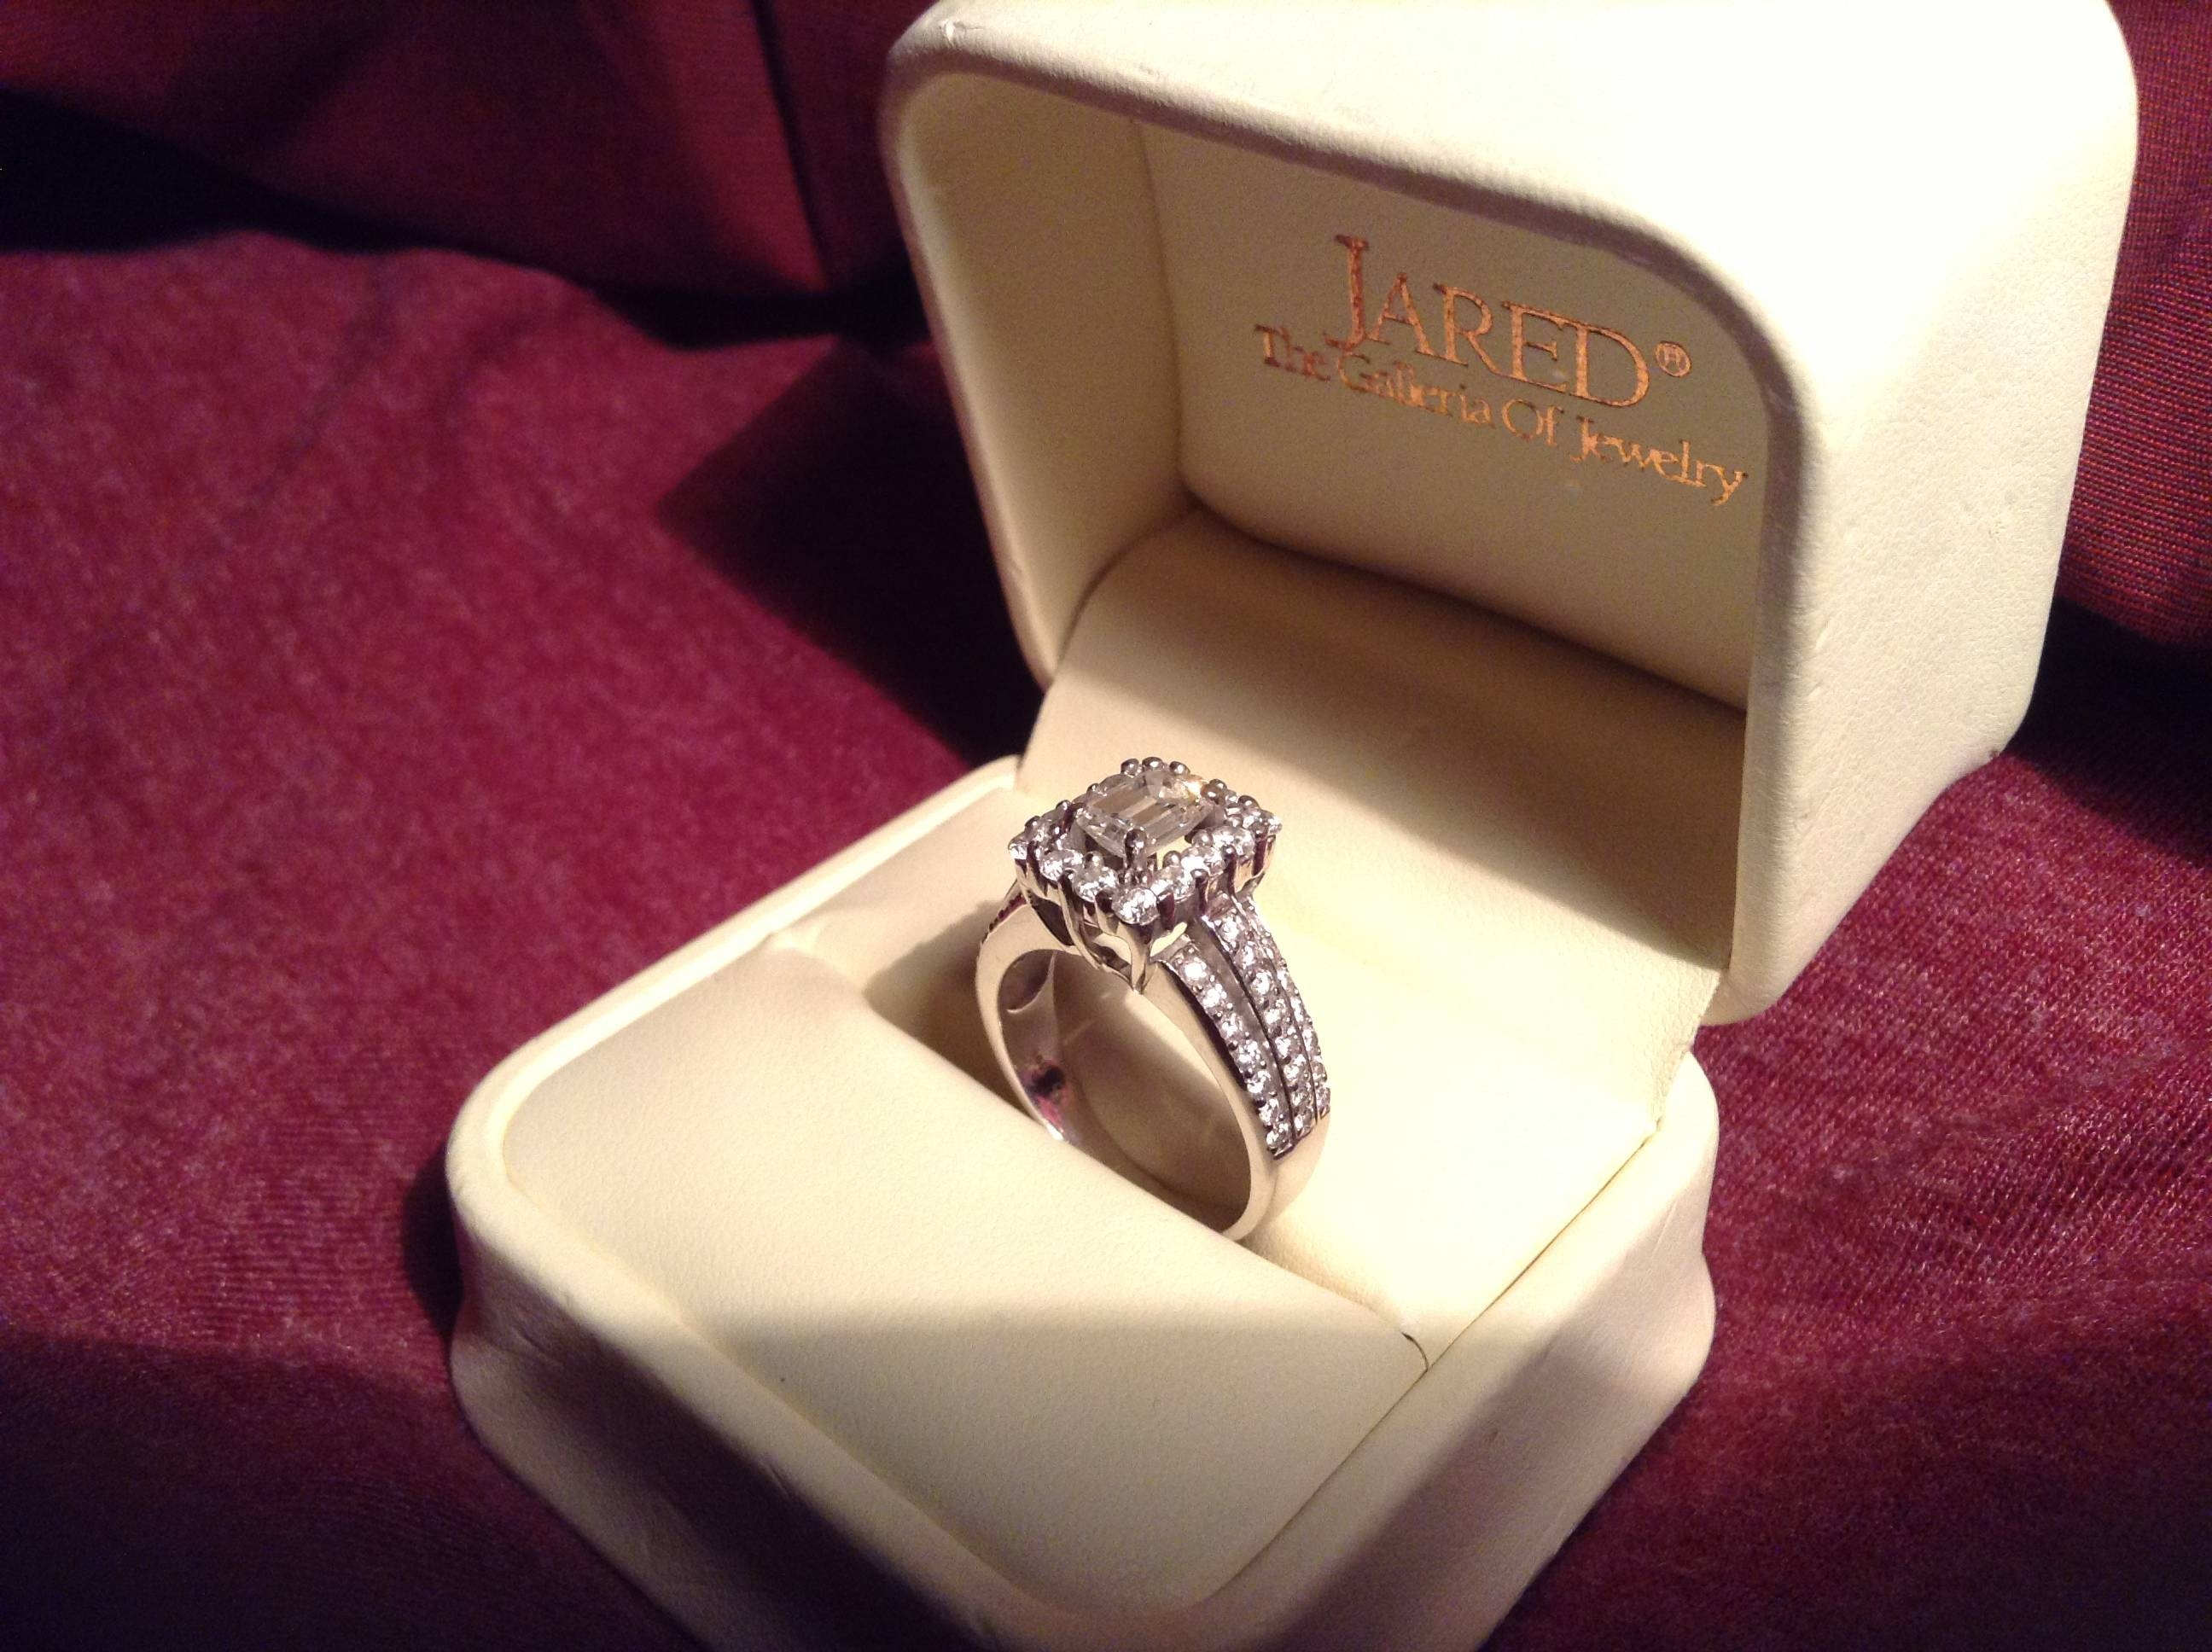 Diamond Ring In Box | Diamondstud Within Engagement Rings In The Box (View 3 of 15)